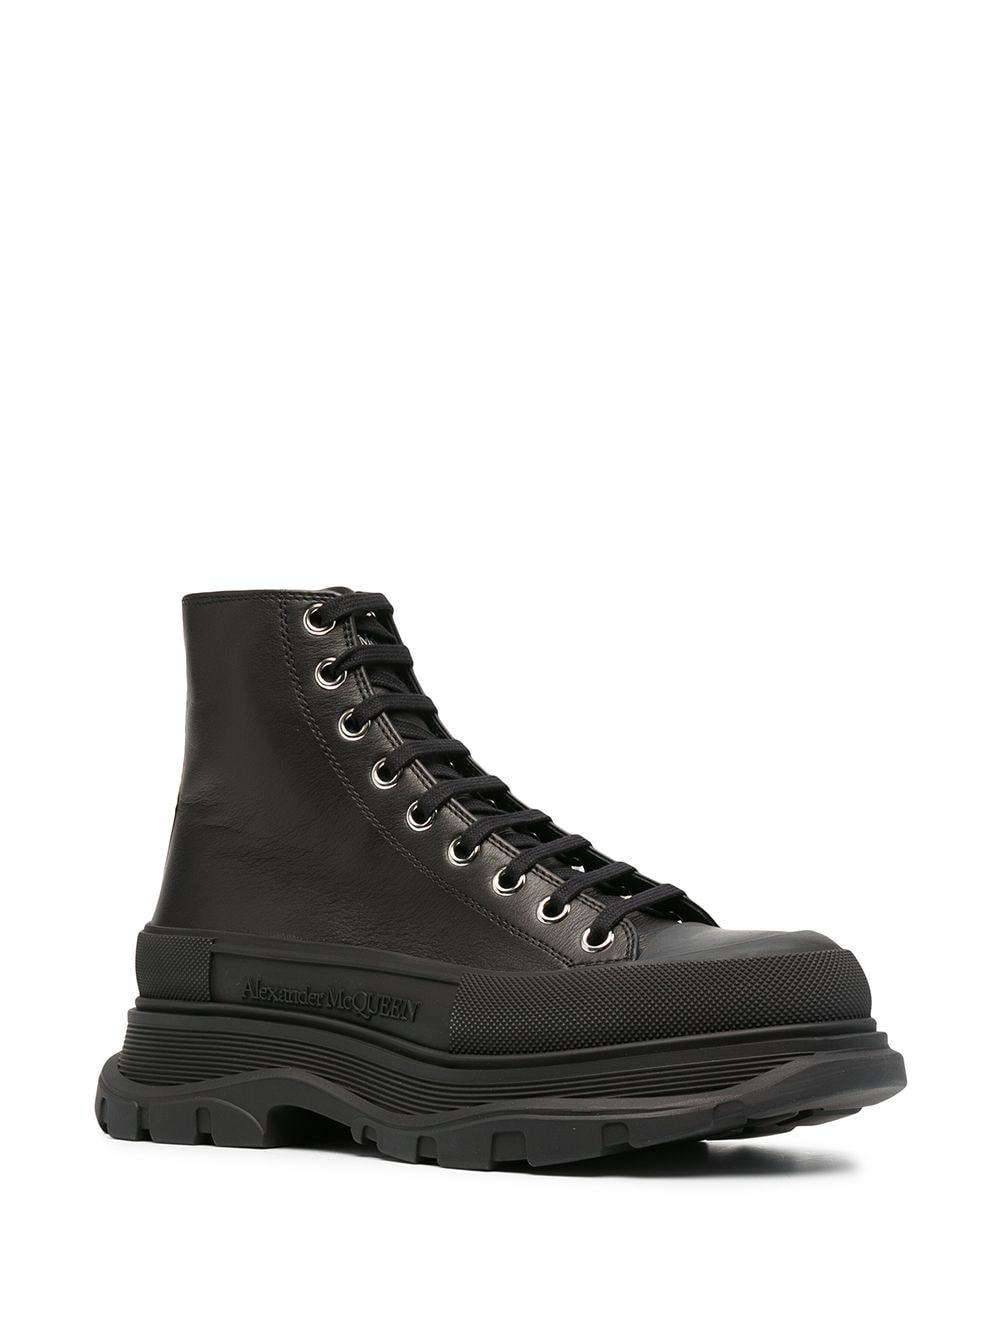 Alexander McQueen Tread Ankle Boots Black - Maison De Fashion